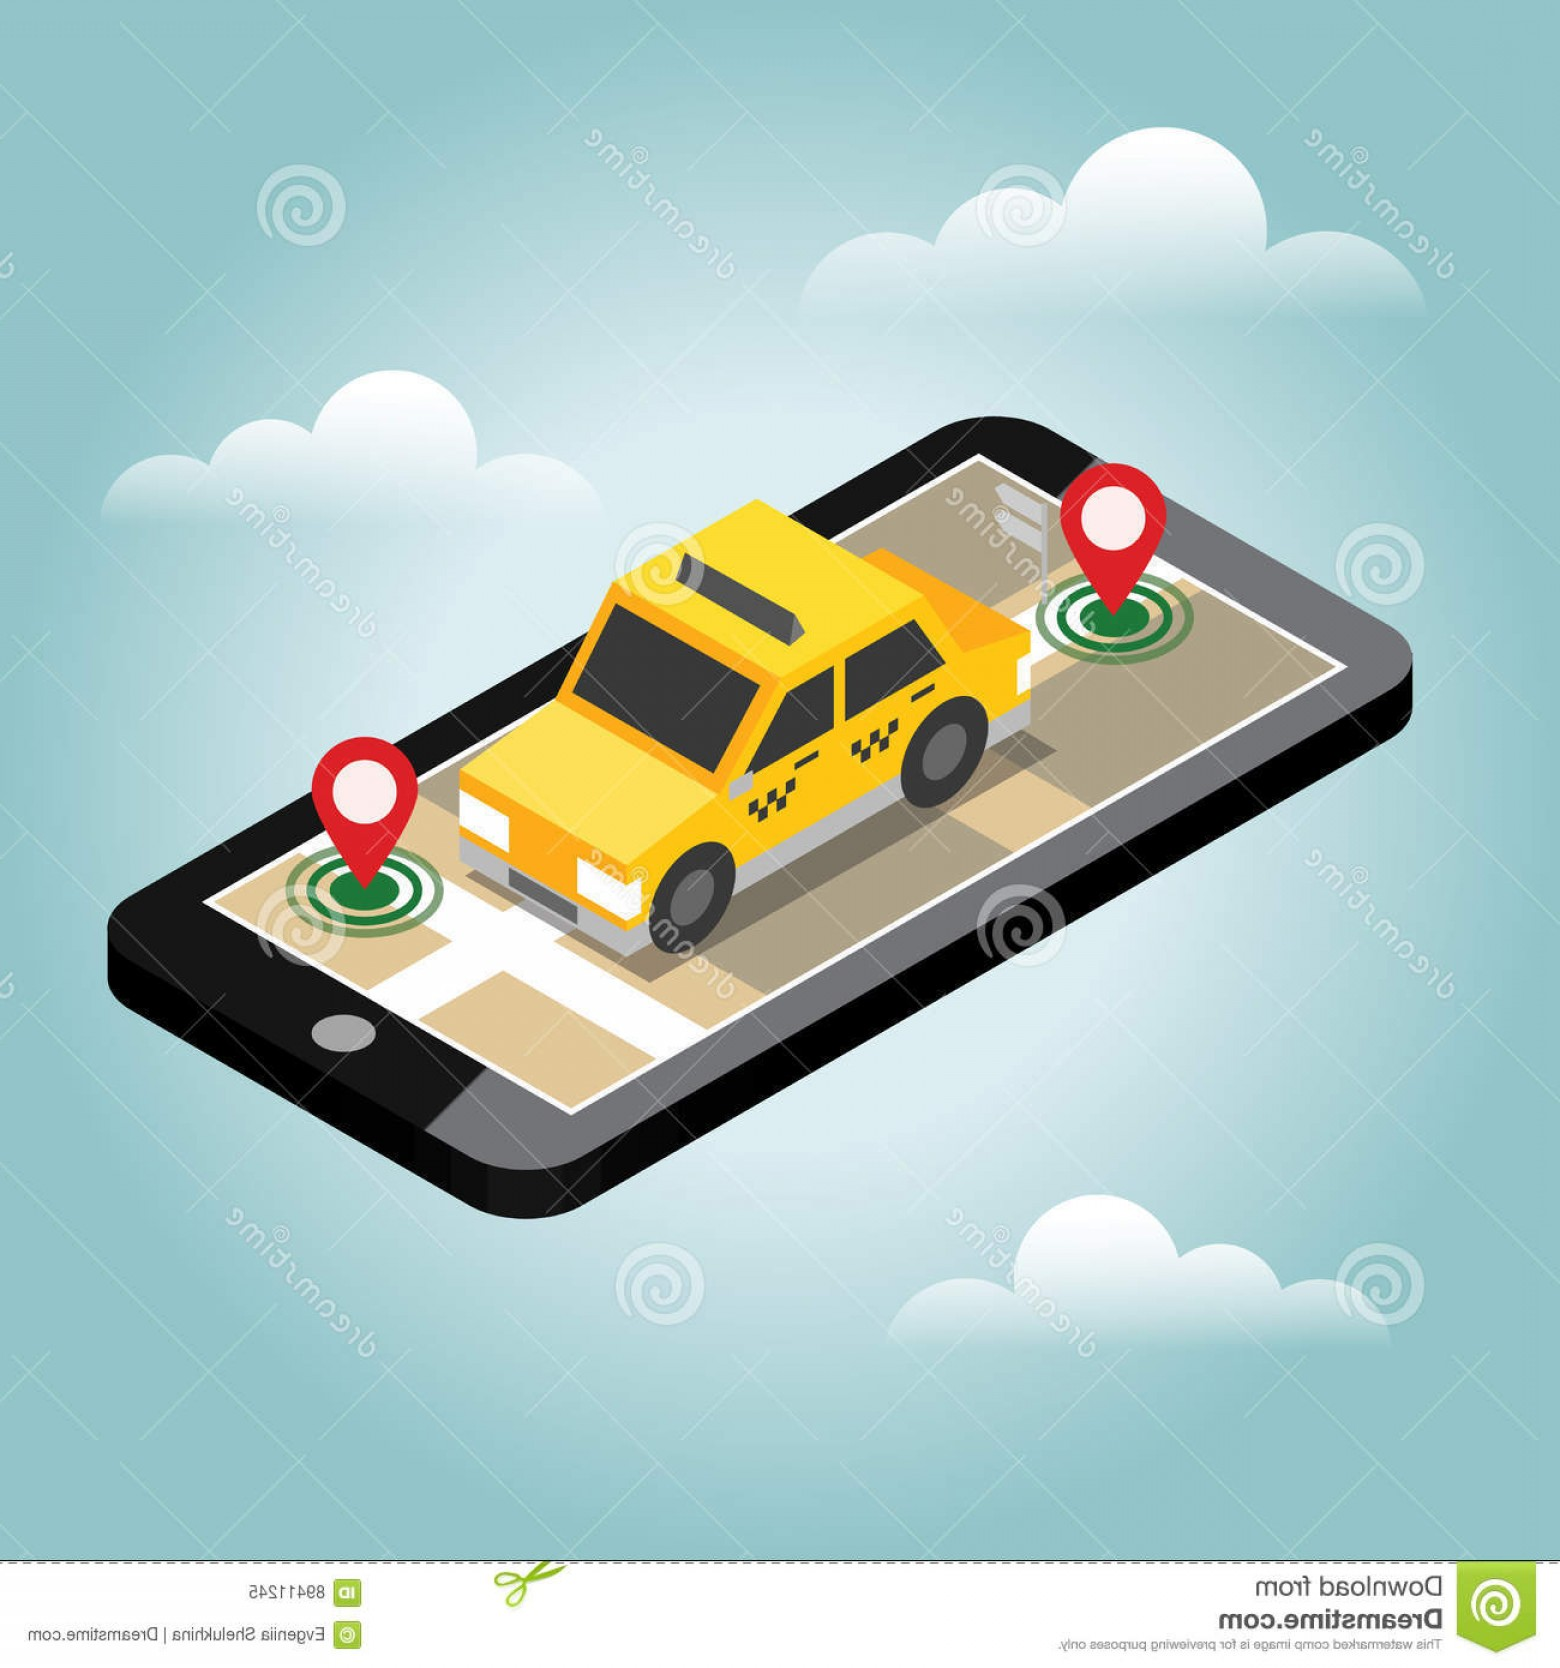 Geo-Tracking Vector: Stock Illustration Isometric Location Mobile Geo Tracking Map Taxi Flat D Vector Illustration Concept Picture Image